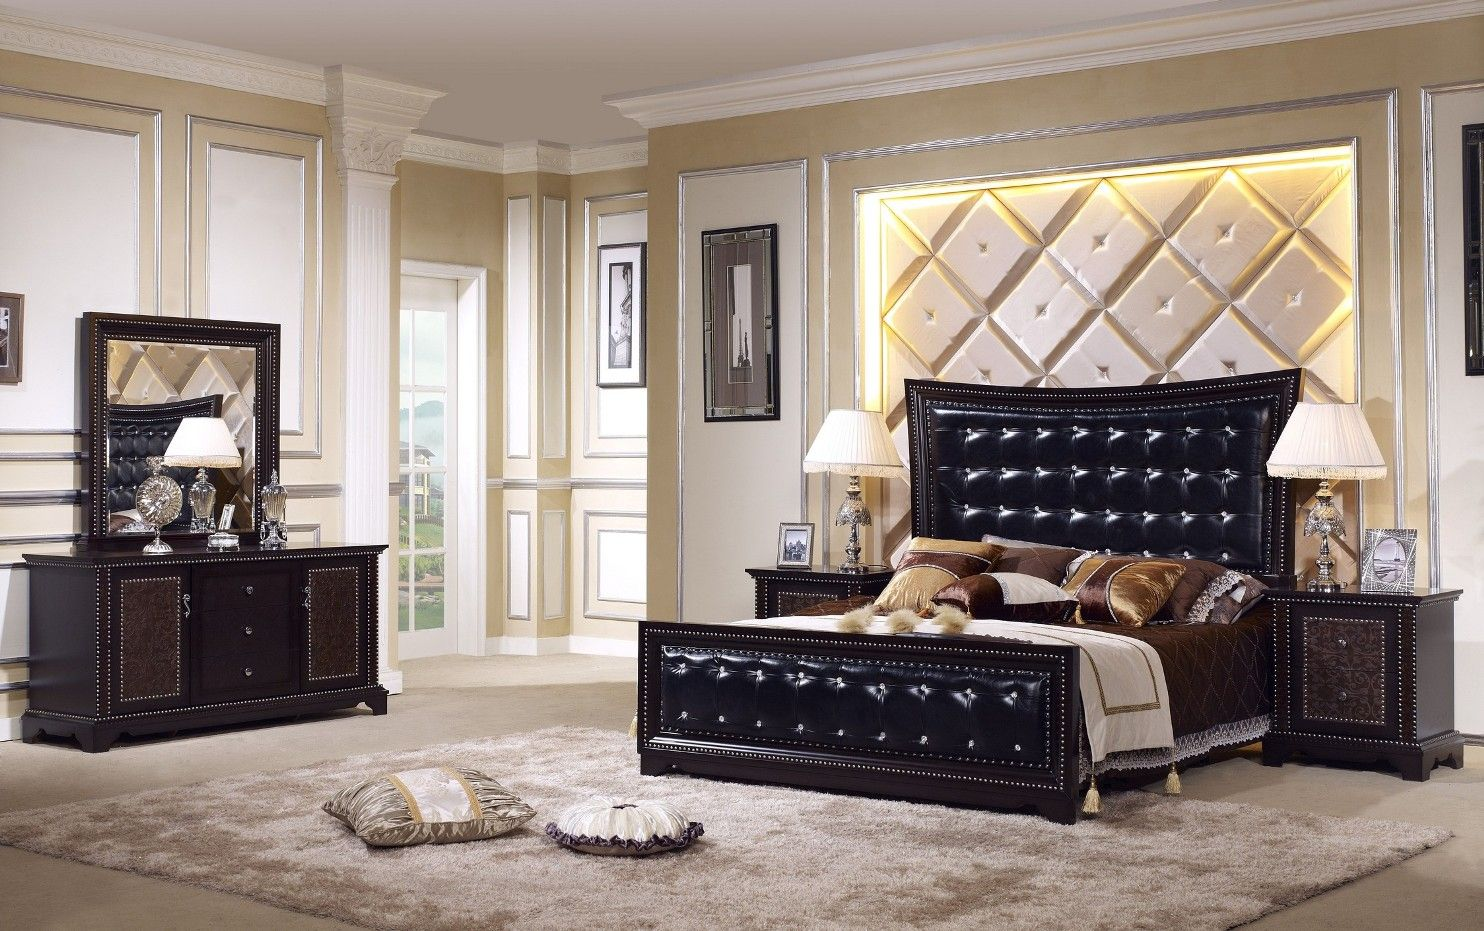 Your Guide To Bedroom Suites Bedroom Suites, Bedroom Decorating Ideas,  Bedroom Ideas, Modern